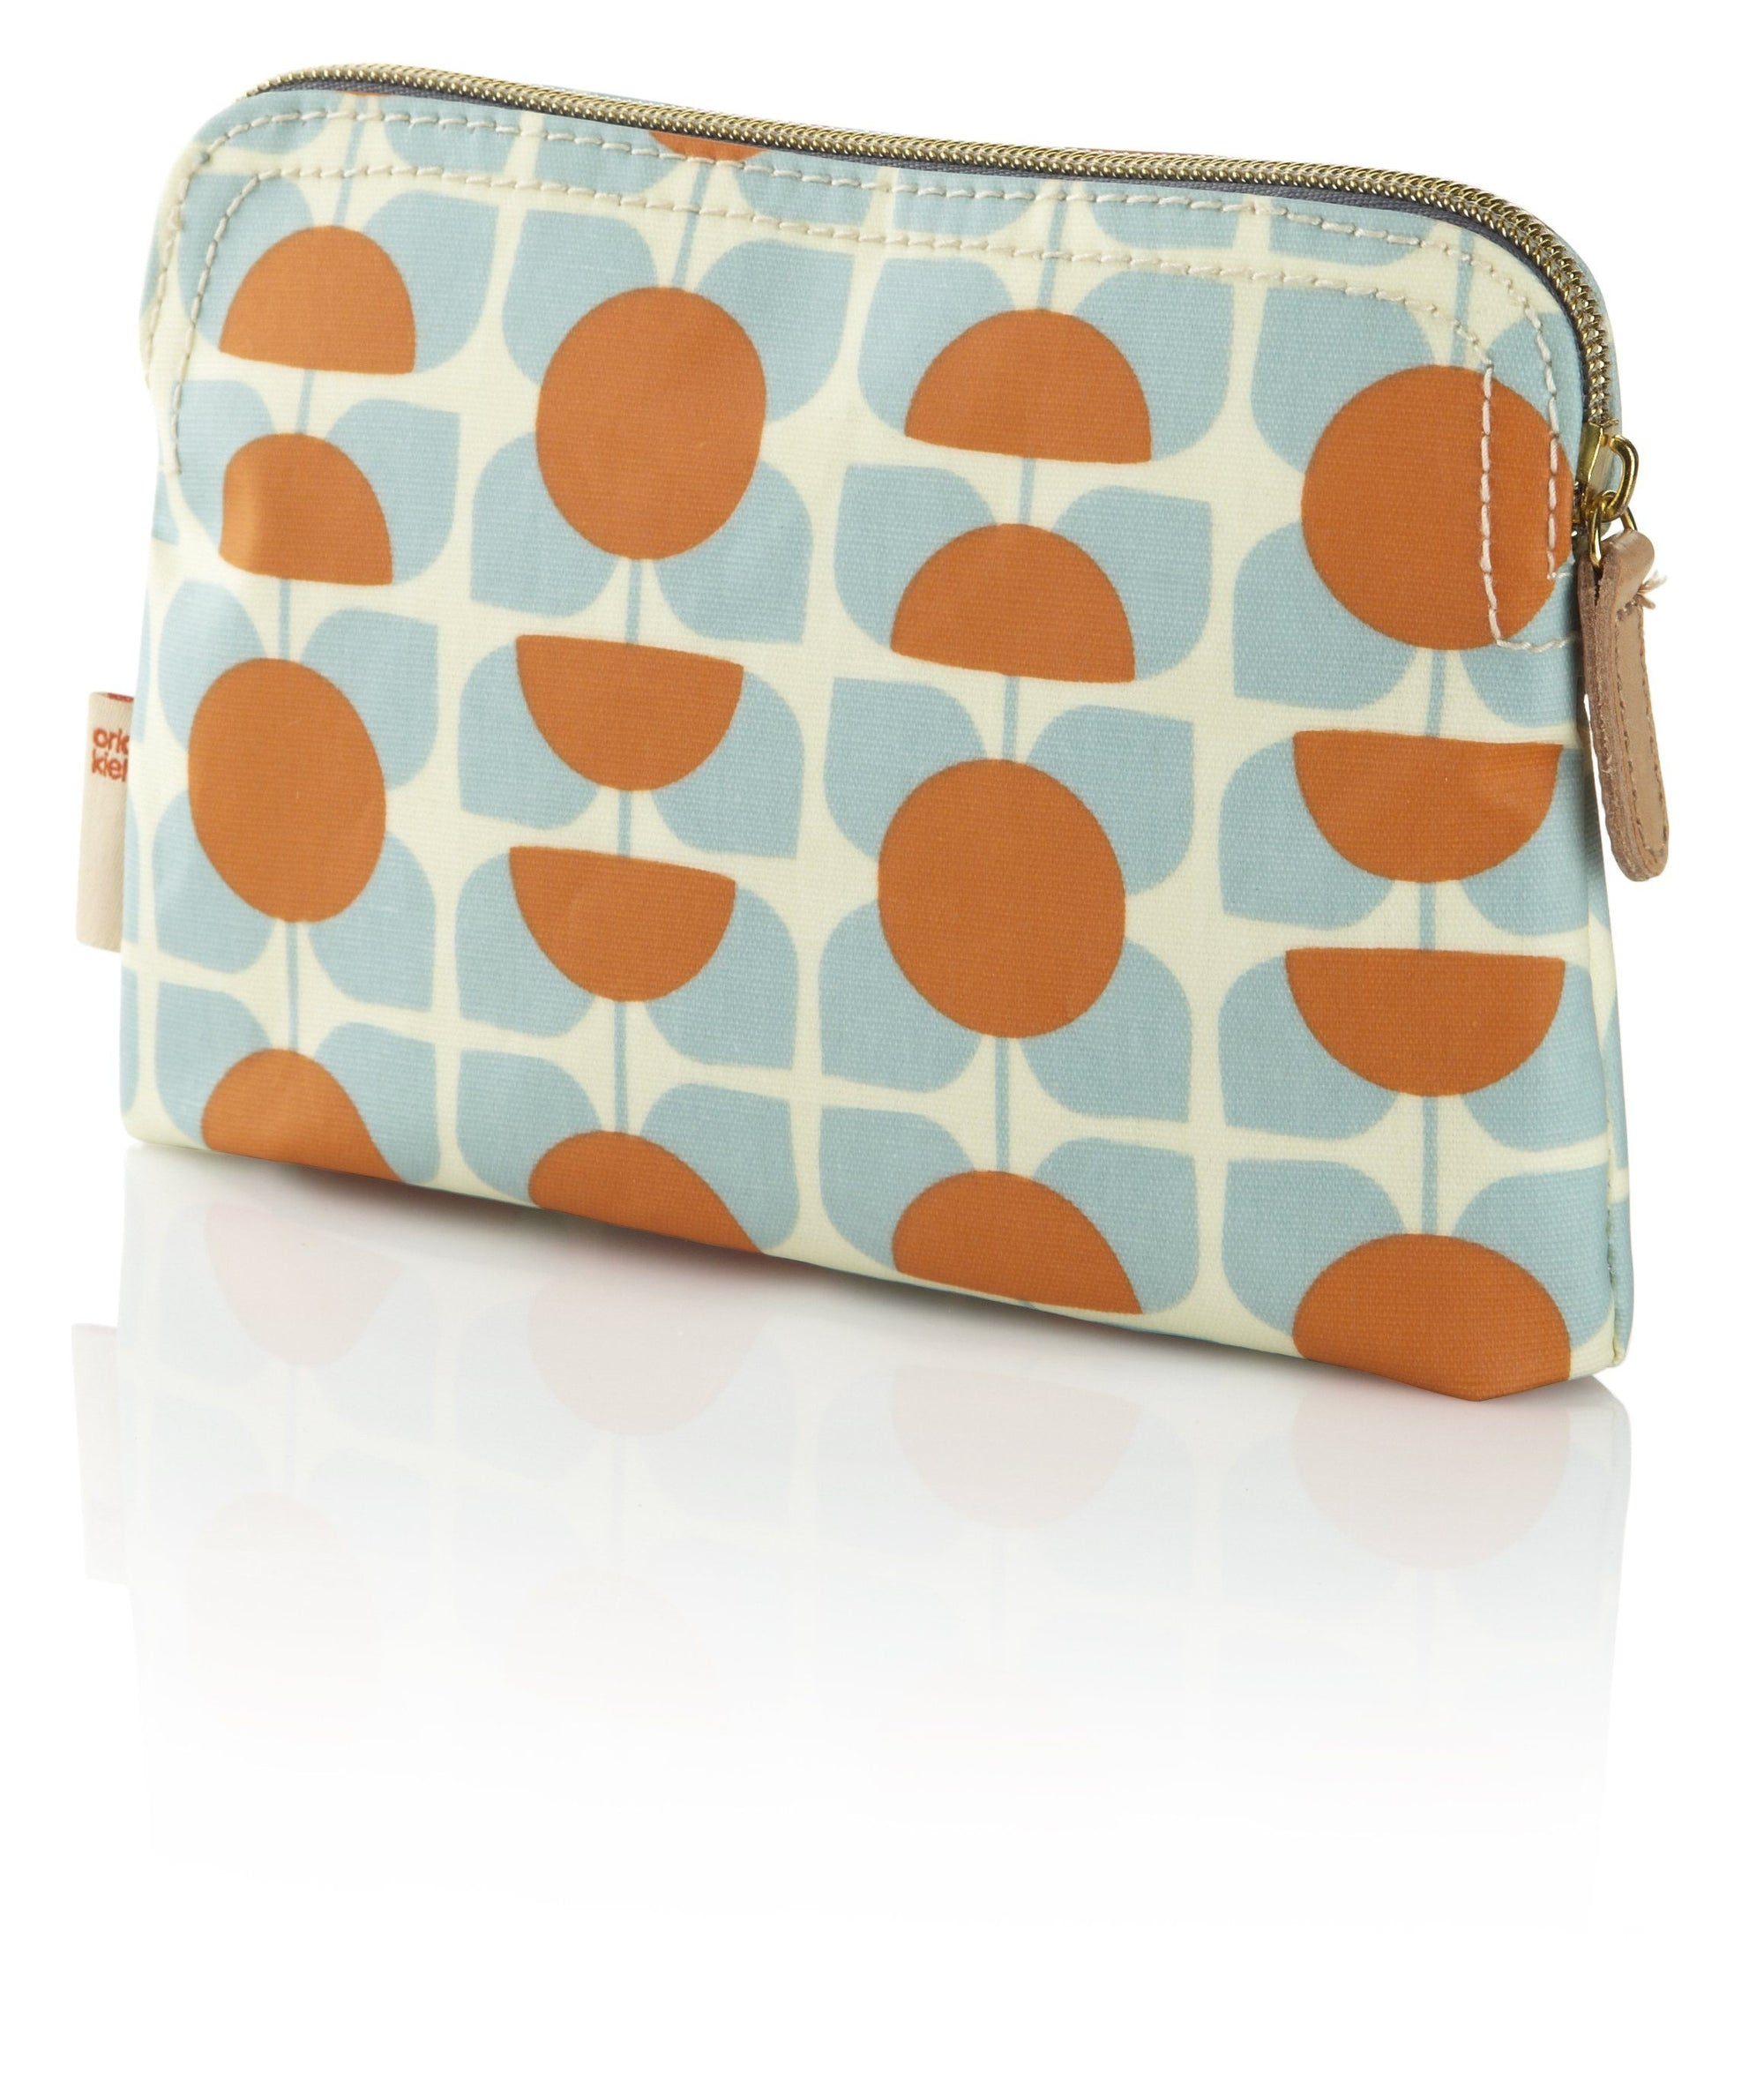 Orla Kiely Square Flower Orange And Blue Cosmetic Bag - BouChic